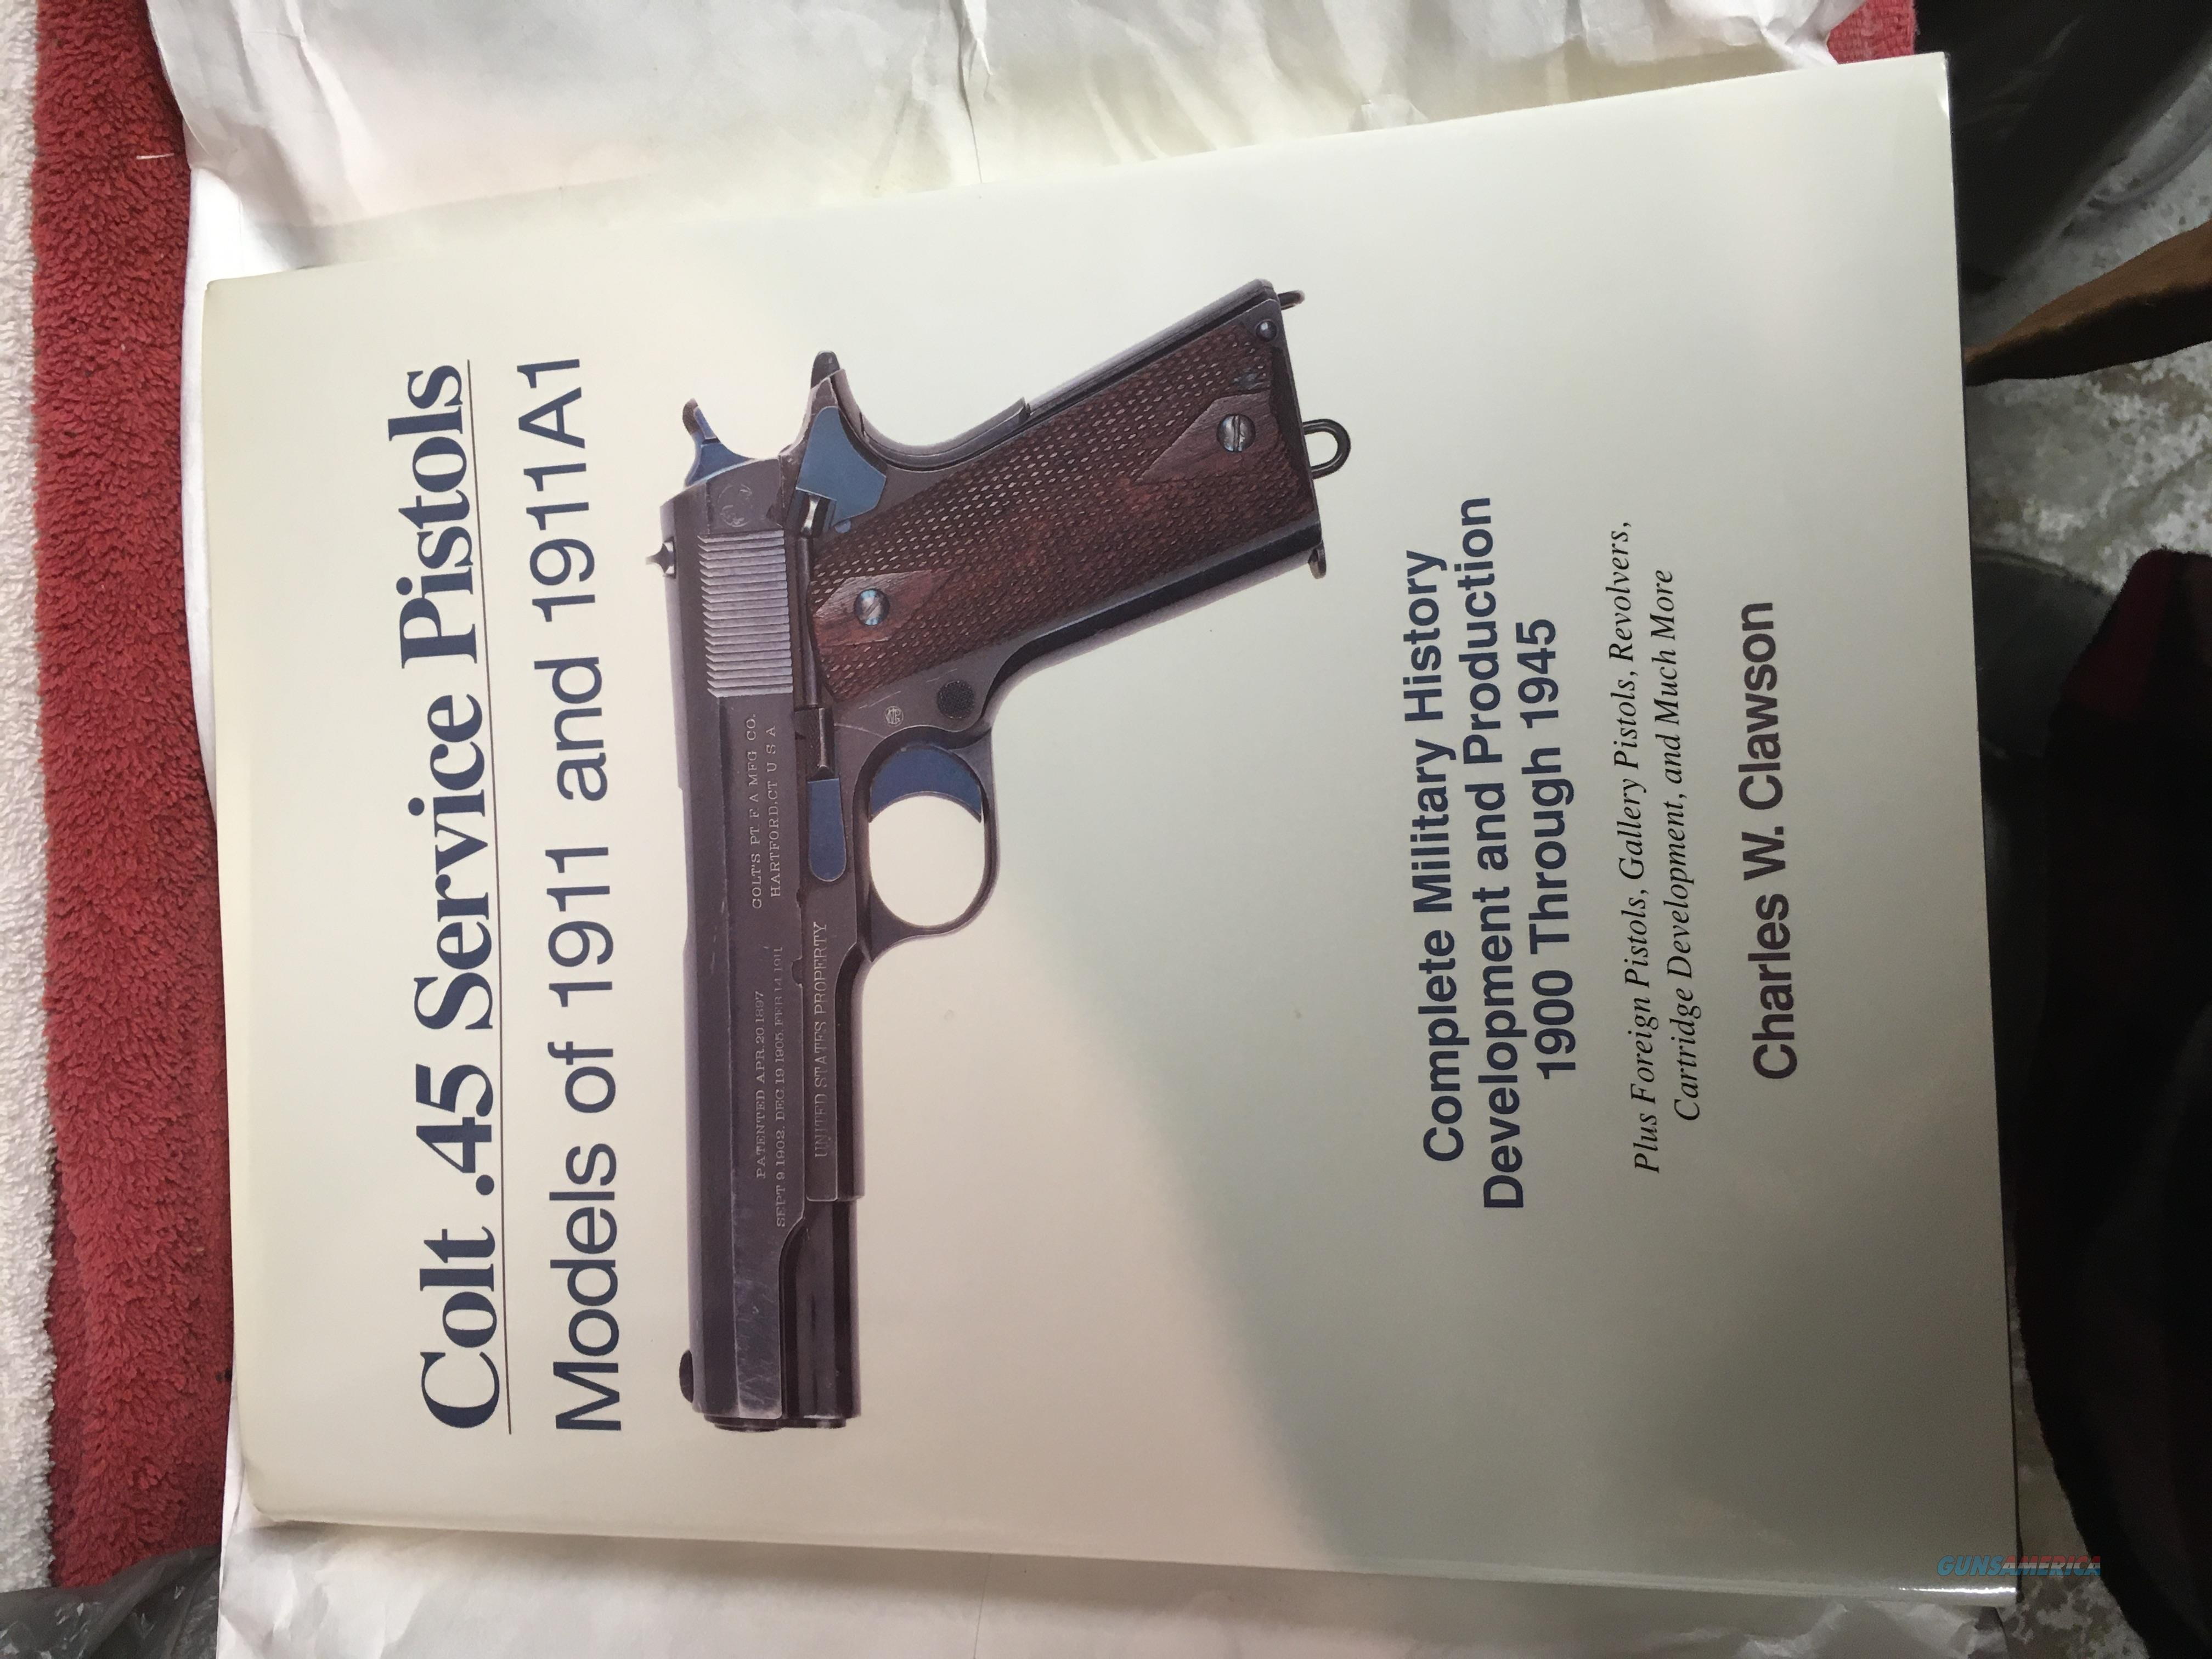 CLAWSON'S FIRST EDITION- Colt .45 Service Pistols  Models of 1911 and 1911A1  MINT FIRST EDITION.  Unused and  Signed  Non-Guns > Books & Magazines